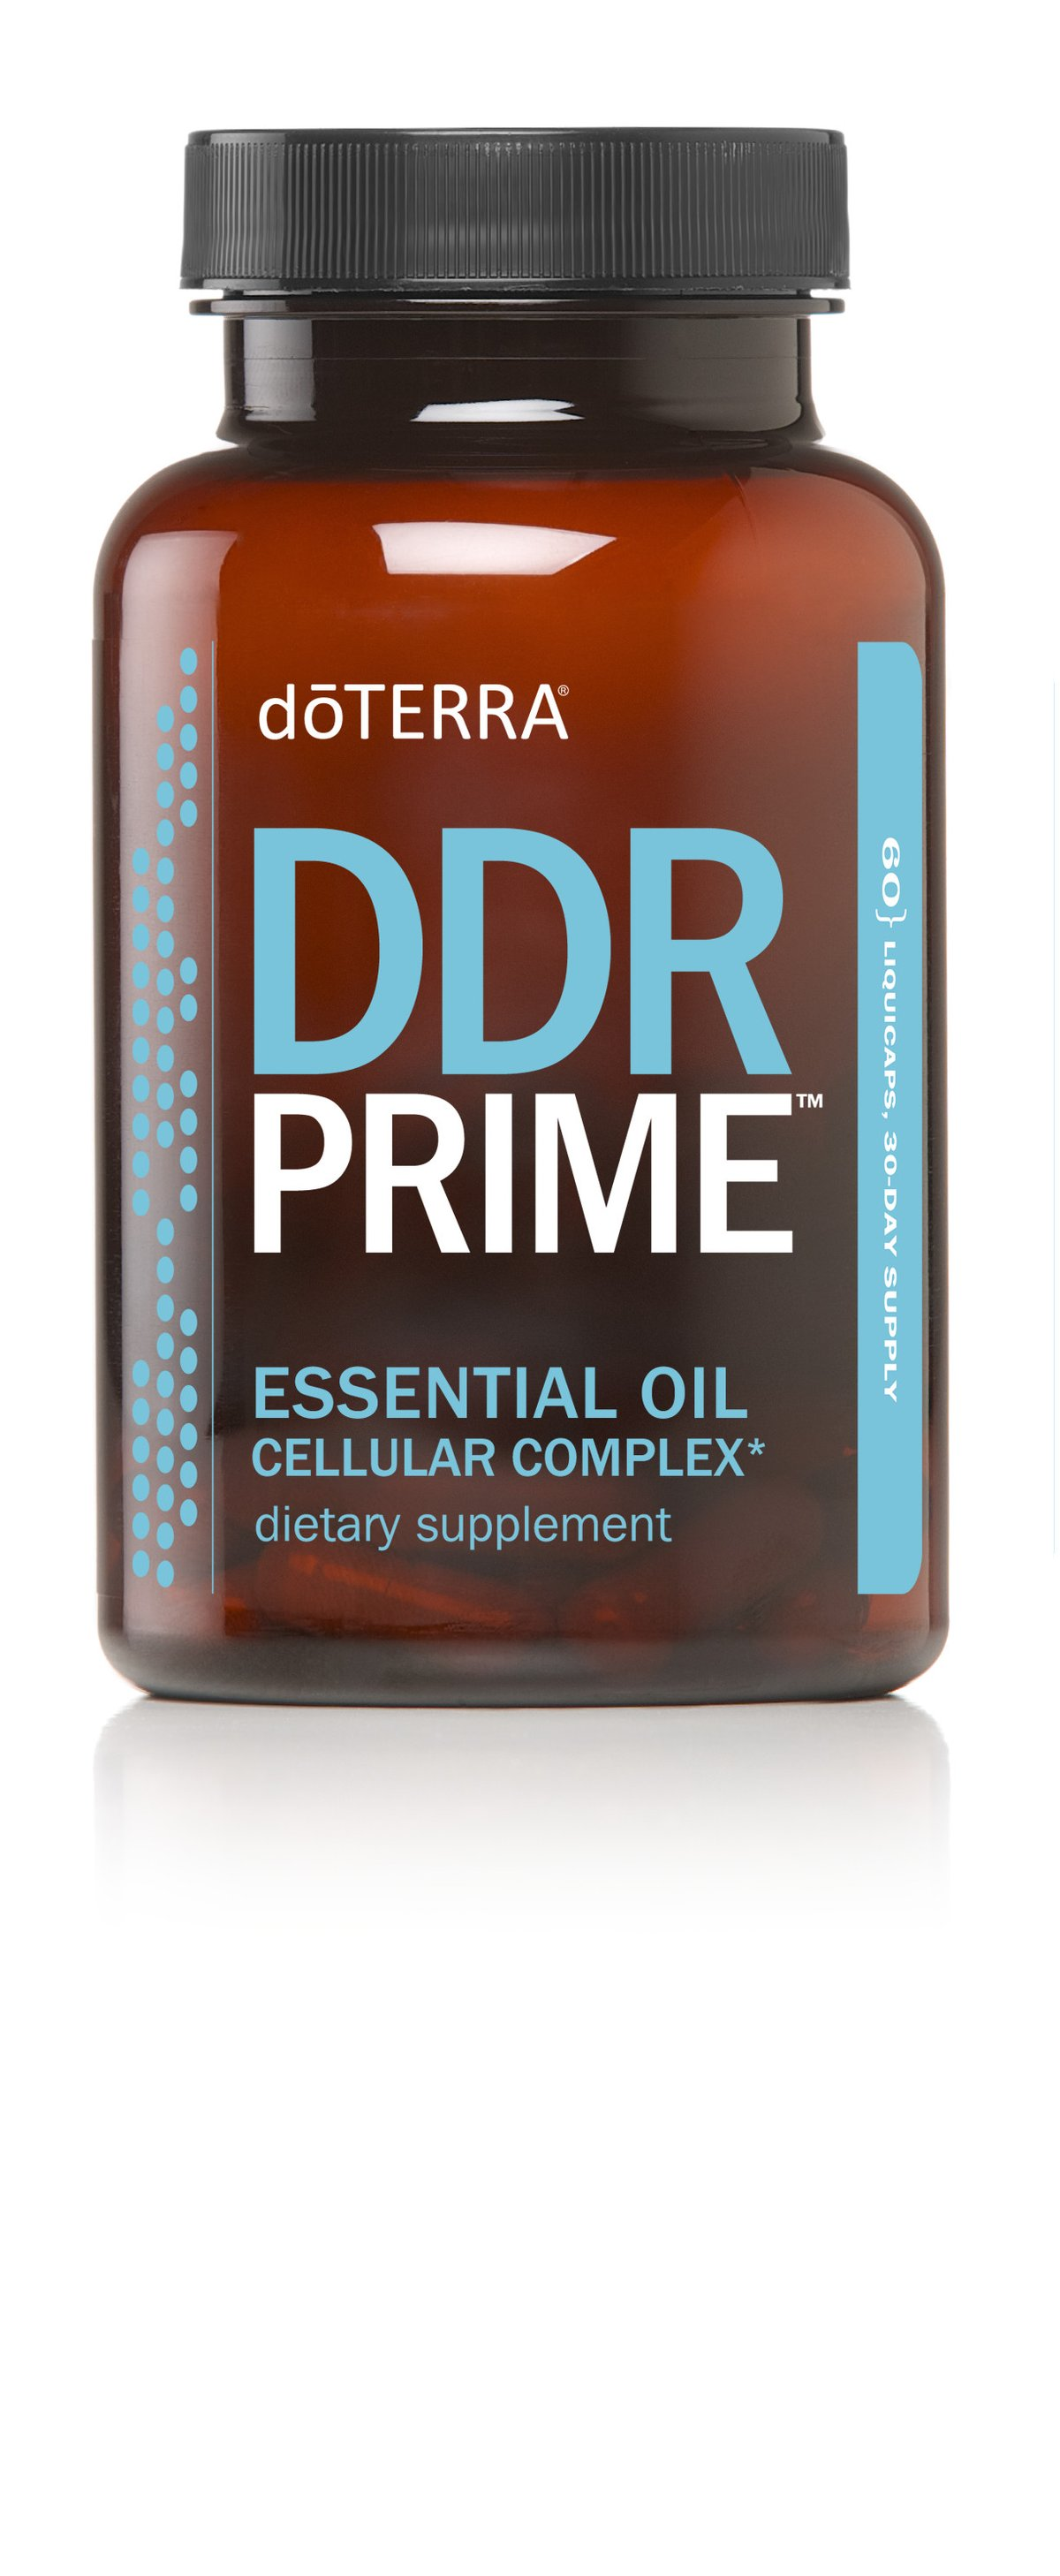 ddr-prime-softgels_600x@2x